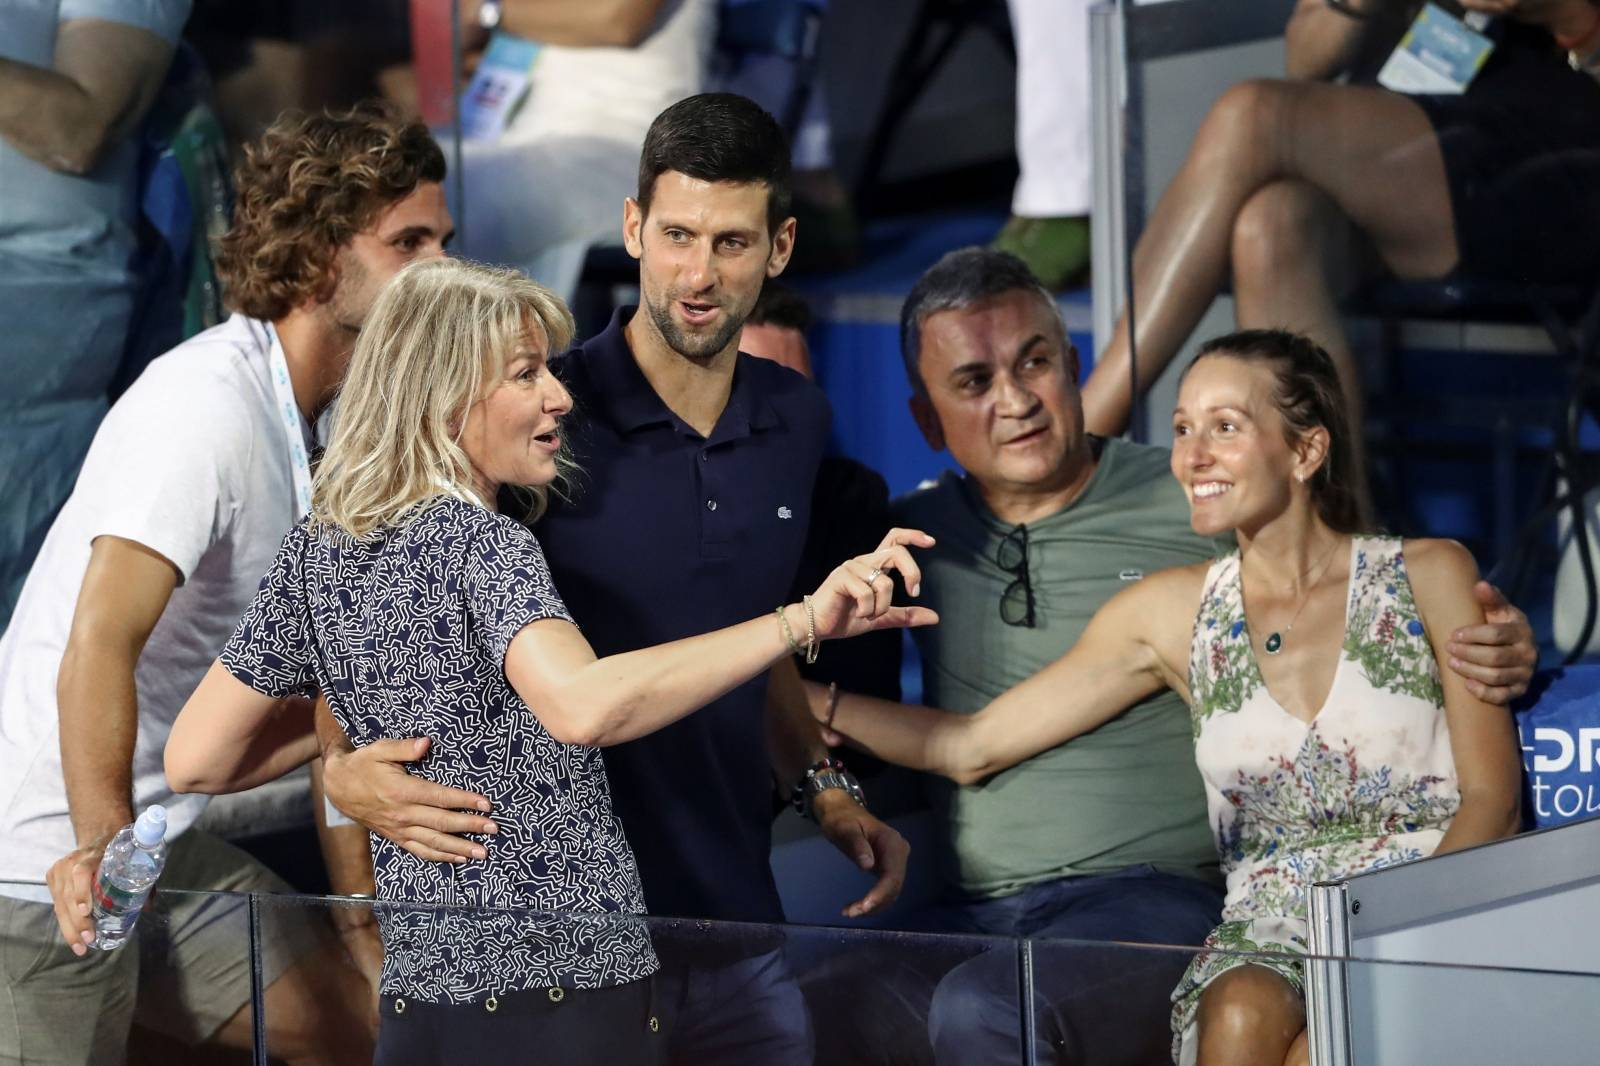 Serbia's Novak Djokovic with his wife Jelena, his father Srdjan, his mother Dijana and his brother Marko in the stands during Adria Tour at Novak Tennis Centre in Belgrade